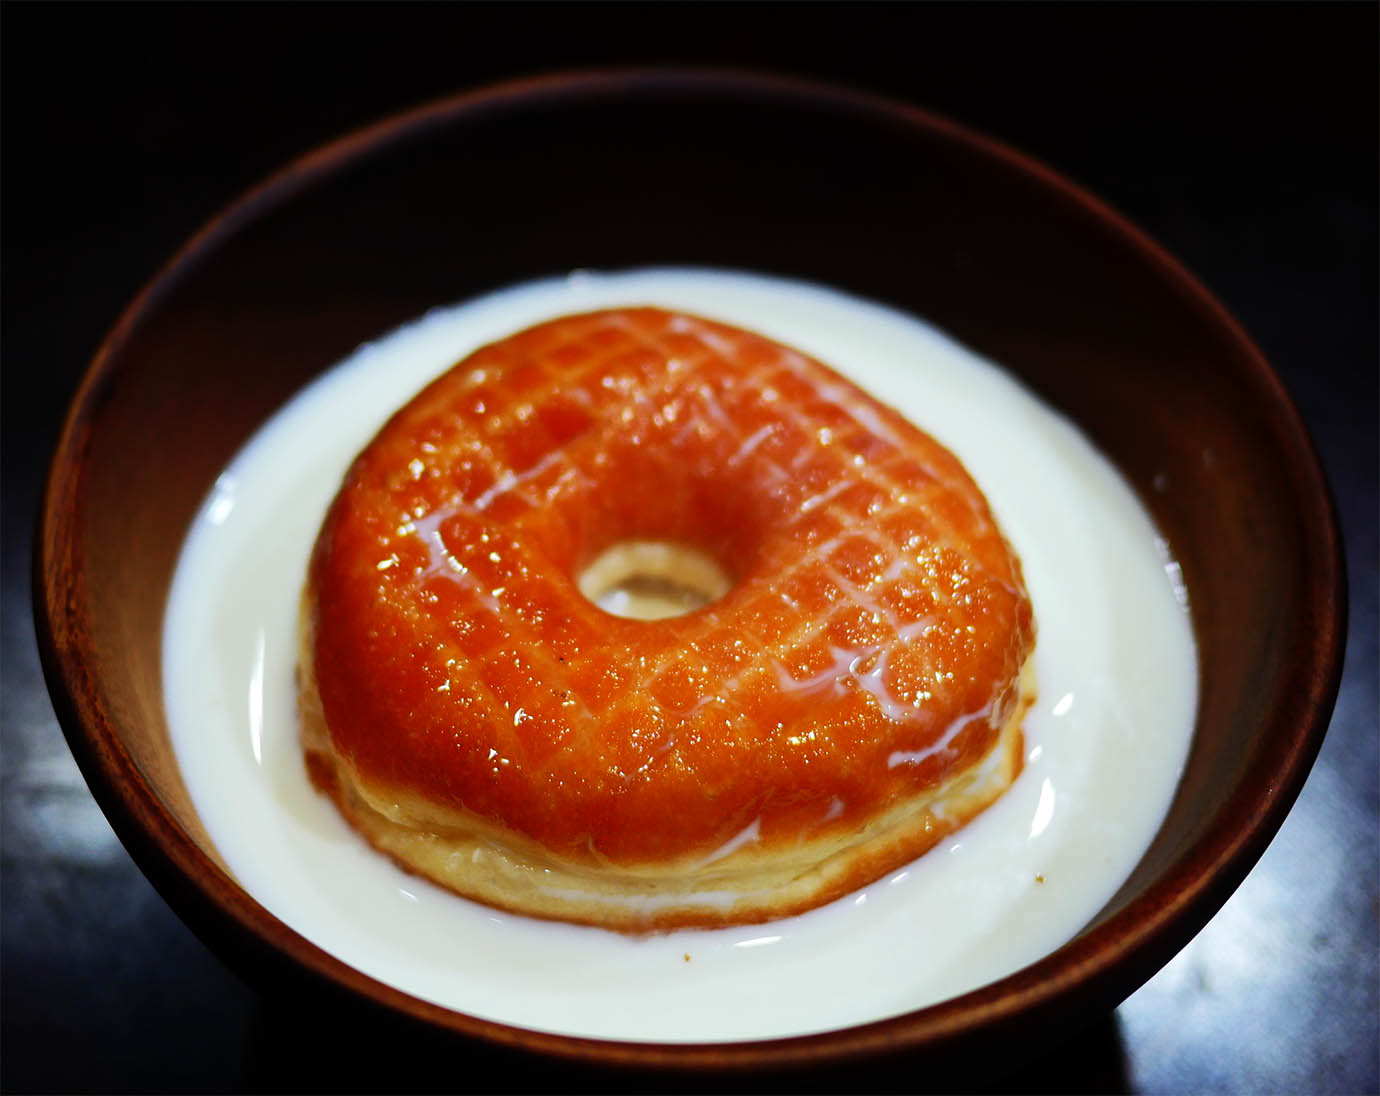 mister-donut-is-delicious3